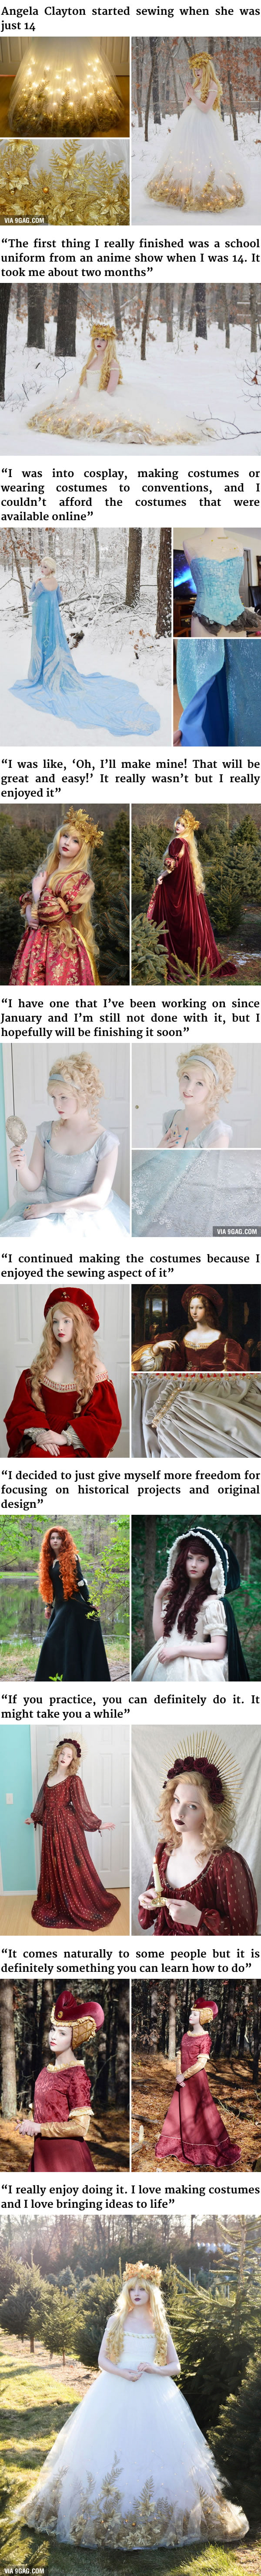 18-Year-Old Girl Sews Incredible Dresses That Look Straight Out Of A Disney Movie